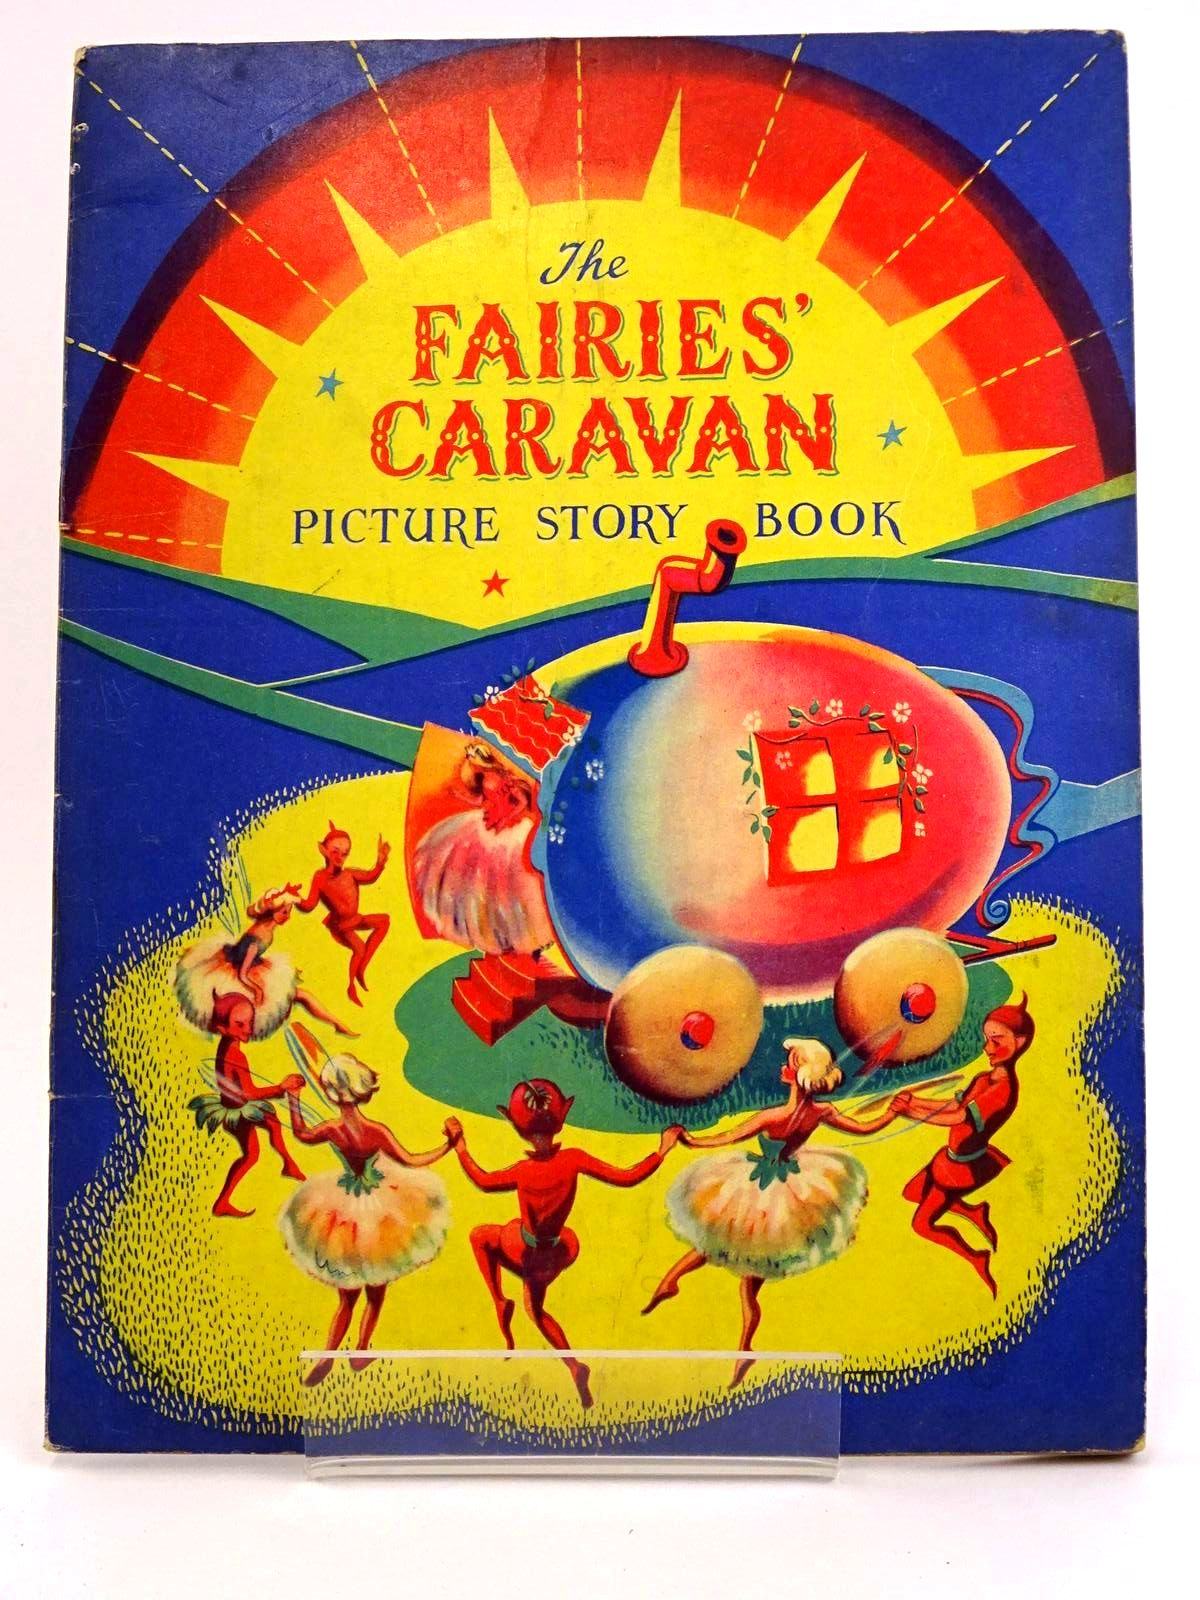 Photo of THE FAIRIES' CARAVAN PICTURE STORY BOOK published by Amex Company Ltd. (STOCK CODE: 1318252)  for sale by Stella & Rose's Books